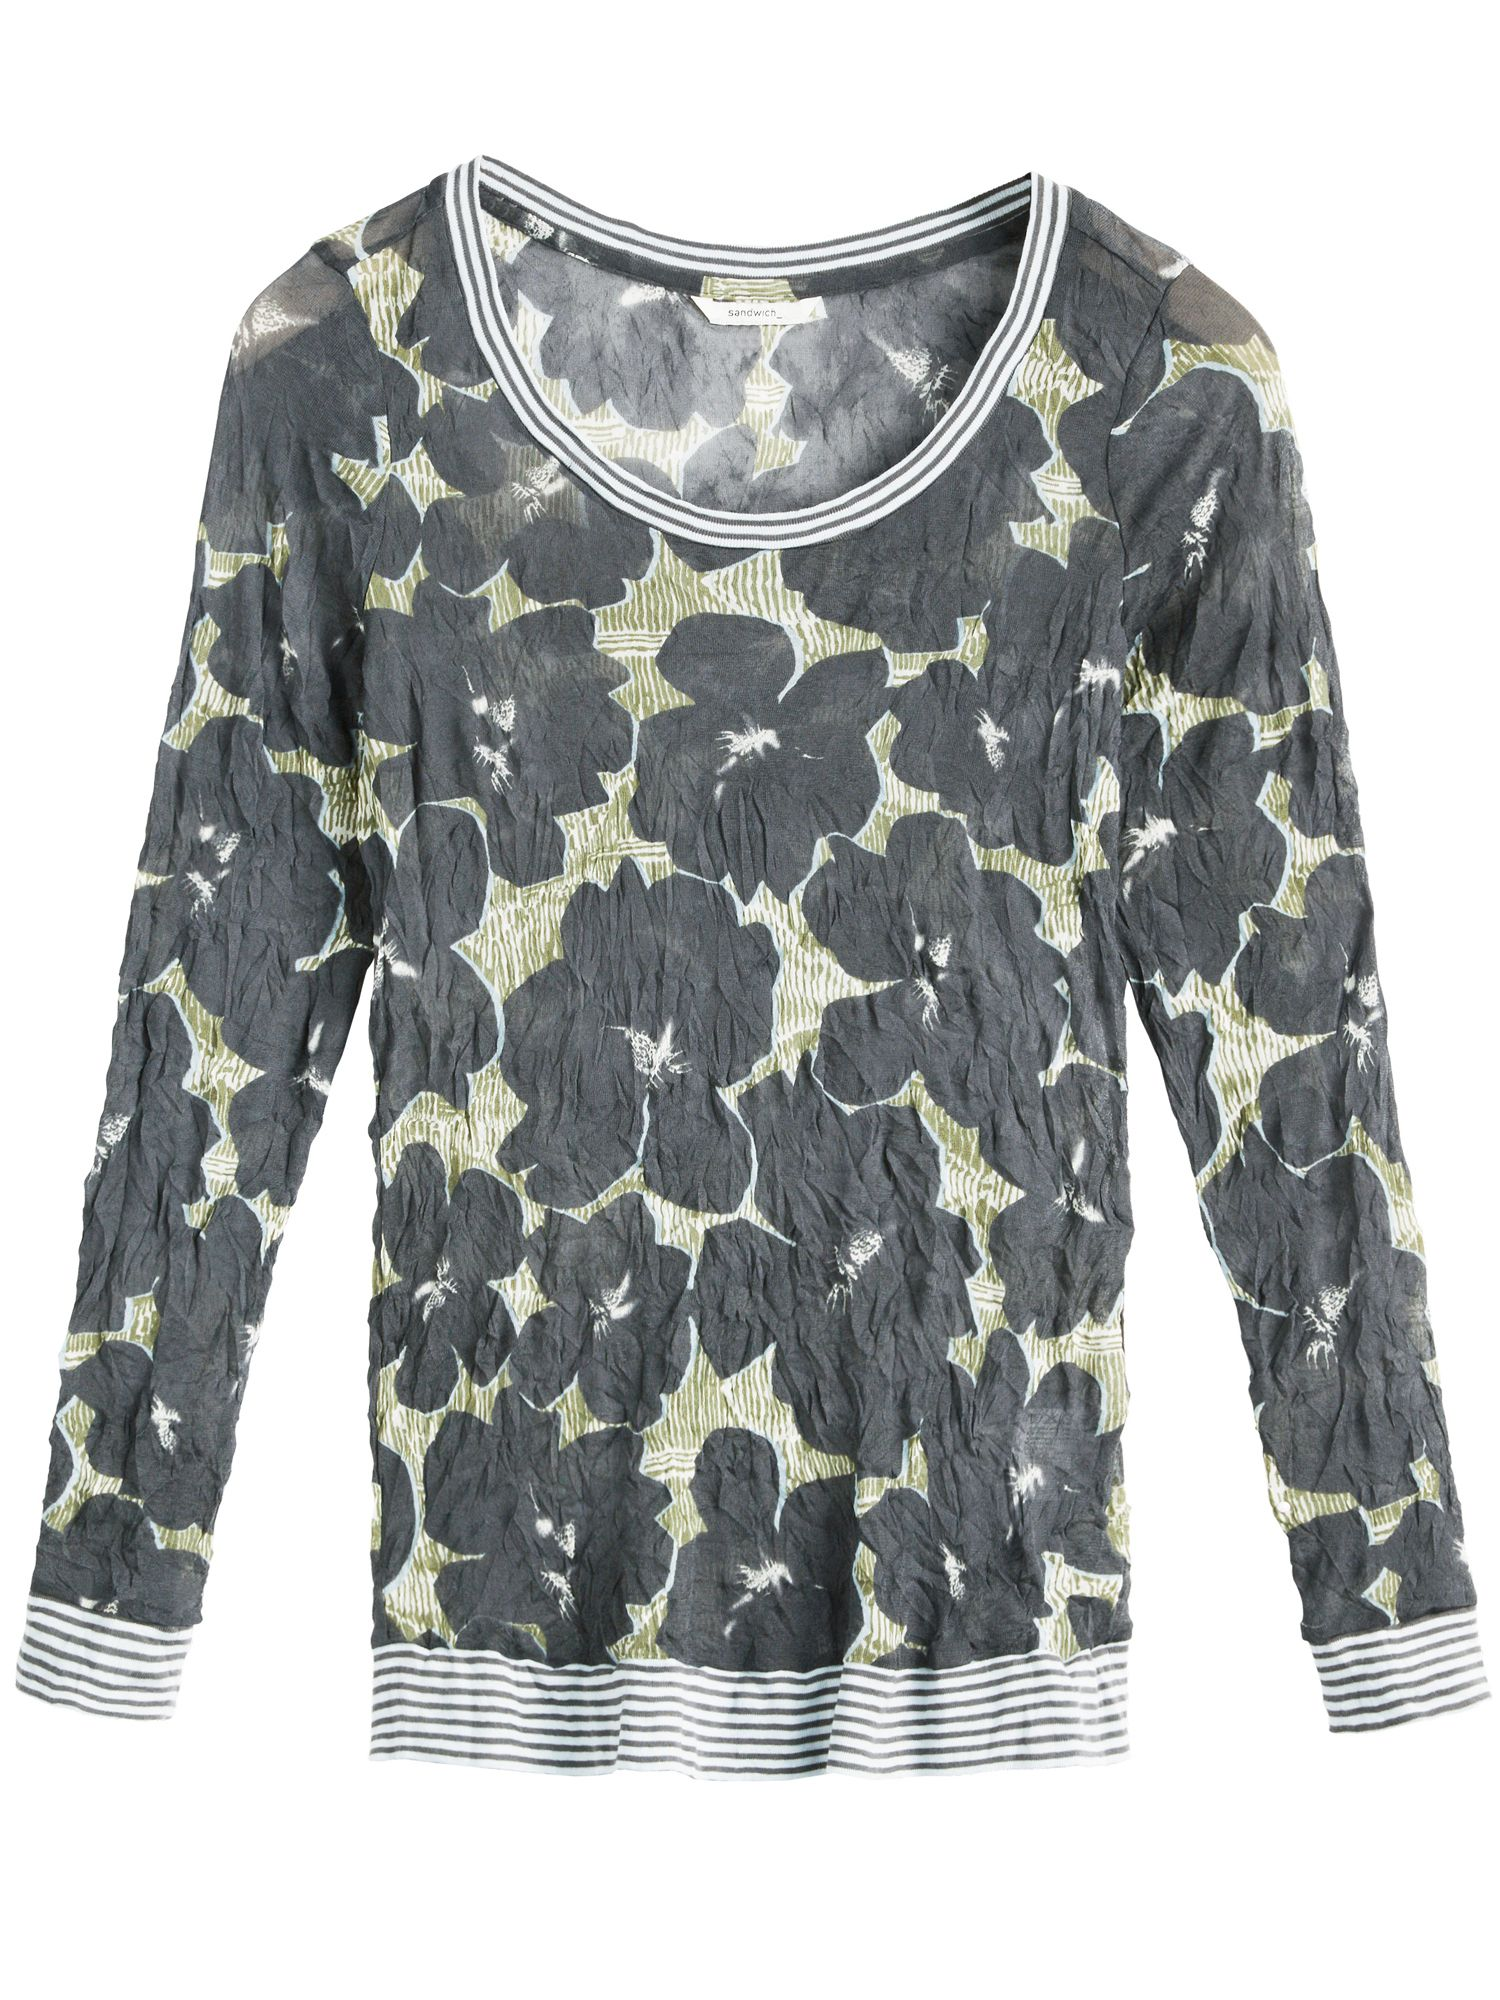 Sandwich Sandwich Crinkled printed jersey top, Grey